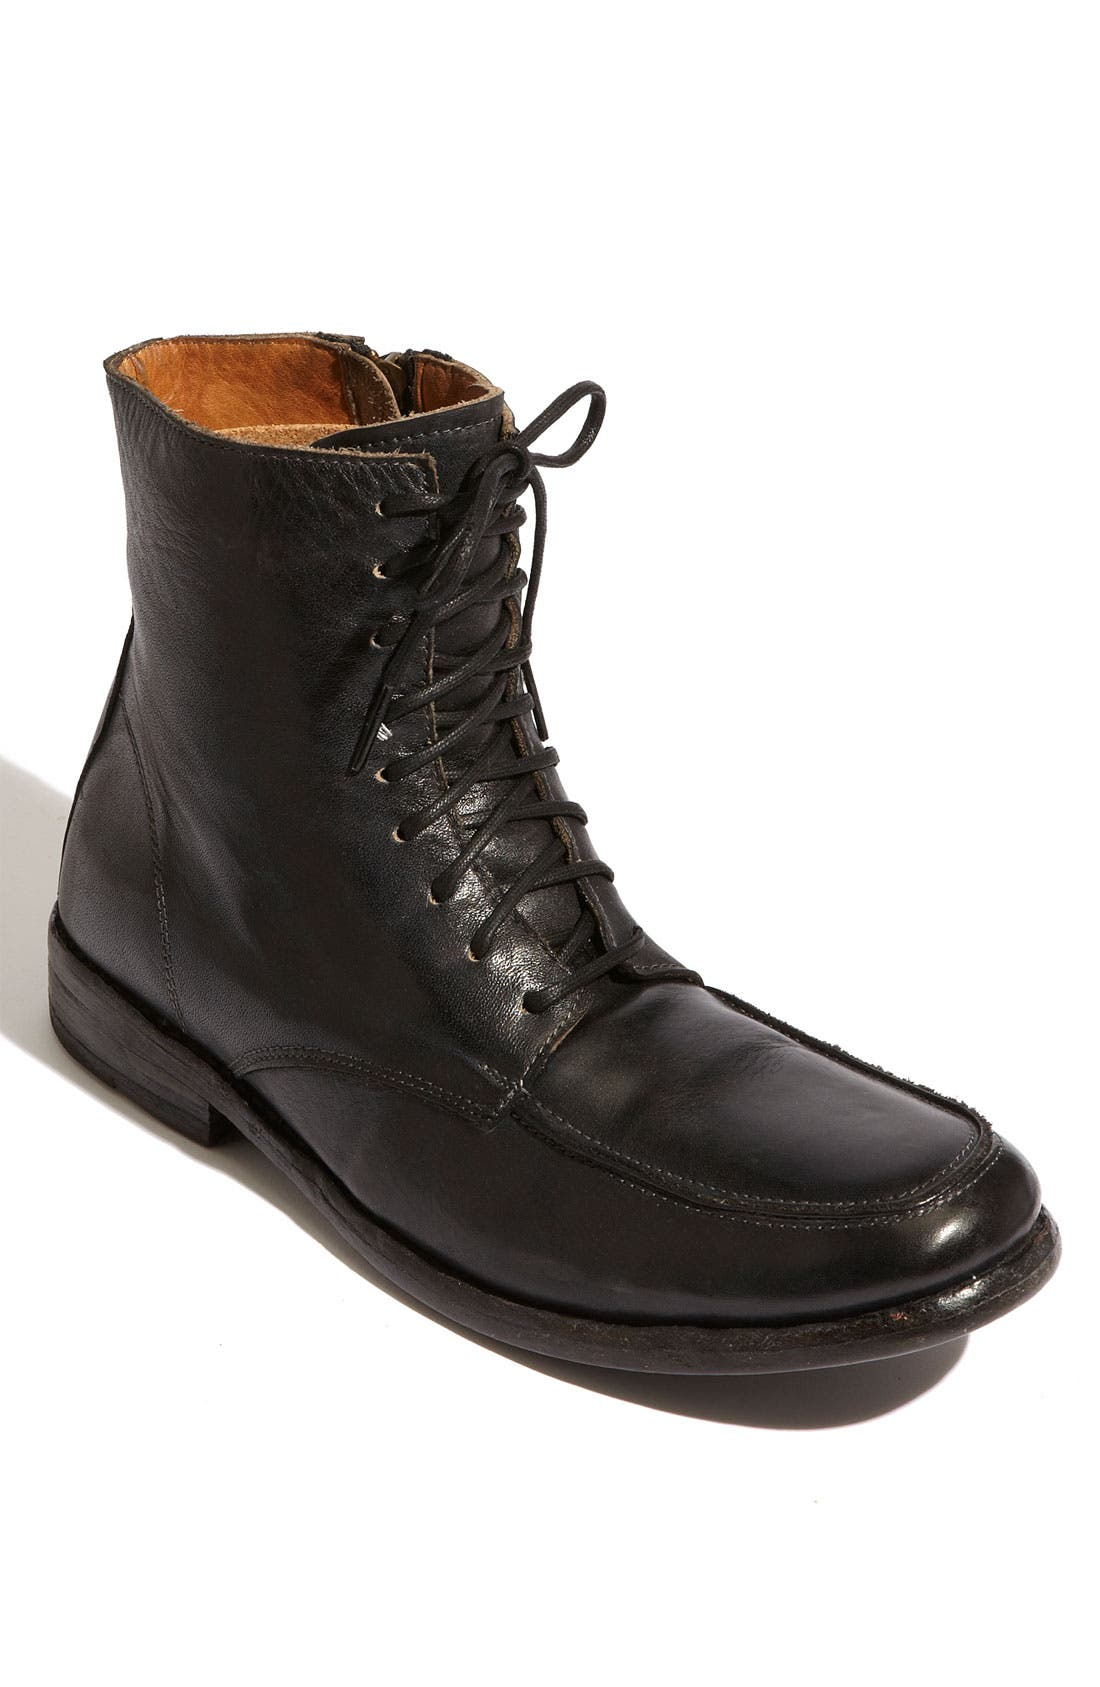 Alternate Image 1 Selected - Bed Stu 'Leo' Boot (Online Only)